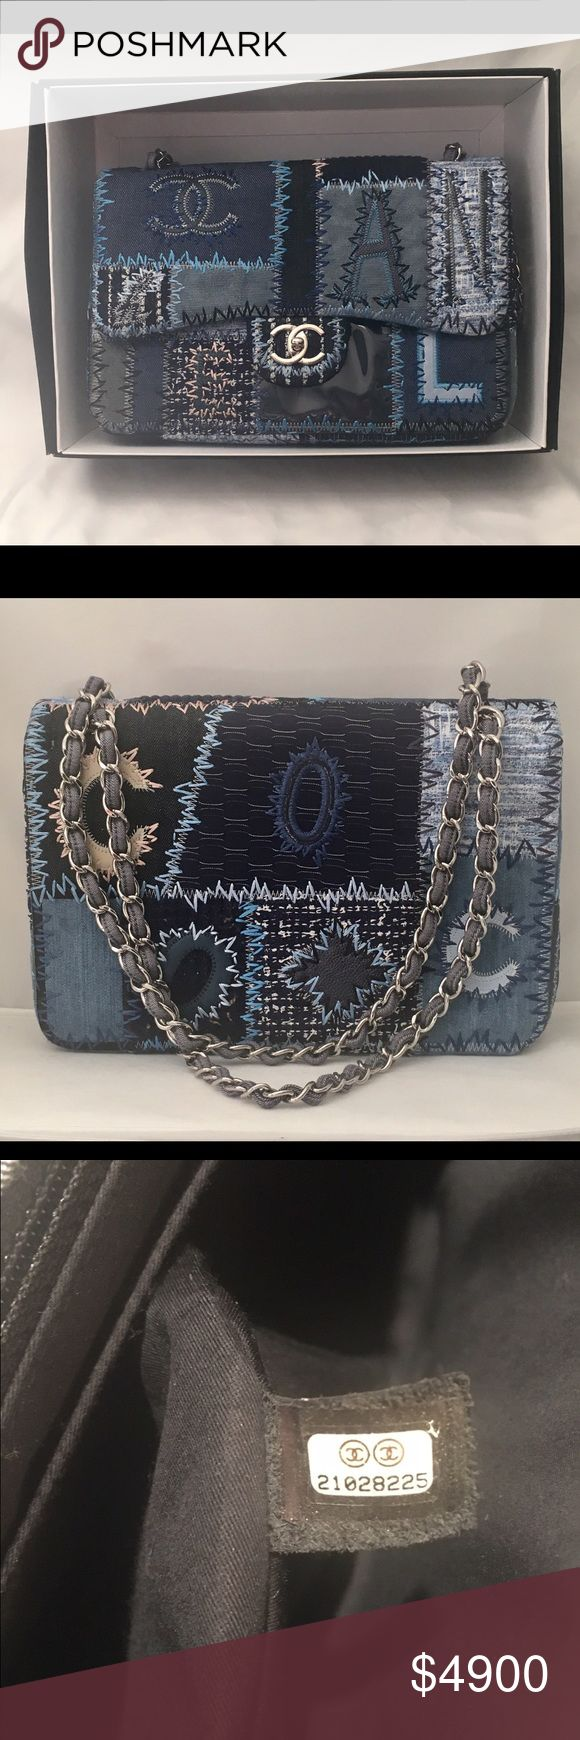 Authentic Chanel Patchwork Jumbo Flap Handbag Authentic Guaranteed. Chanel Jumbo Patchwork Handbag. Blue denim color. New in box. Comes with box, dustbag, authentic card. Beautiful bag. Fast shipping. Ask any questions. Thanks for looking. CHANEL Bags Shoulder Bags